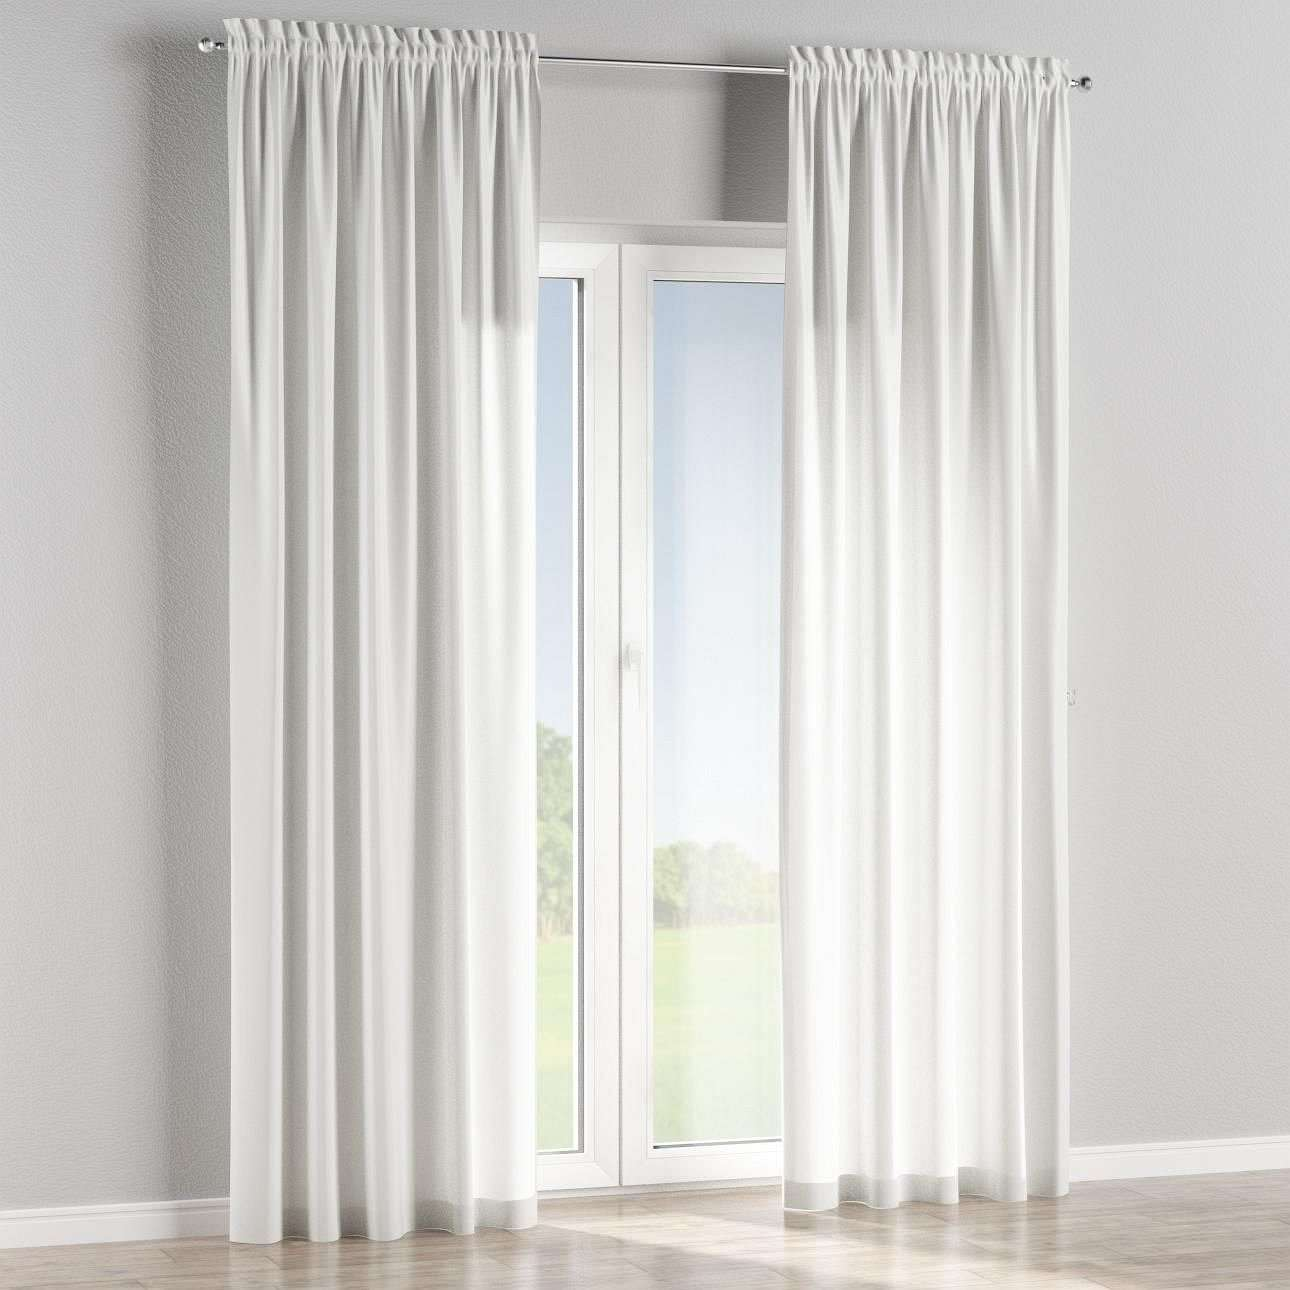 Slot and frill curtains in collection Rustica, fabric: 138-21